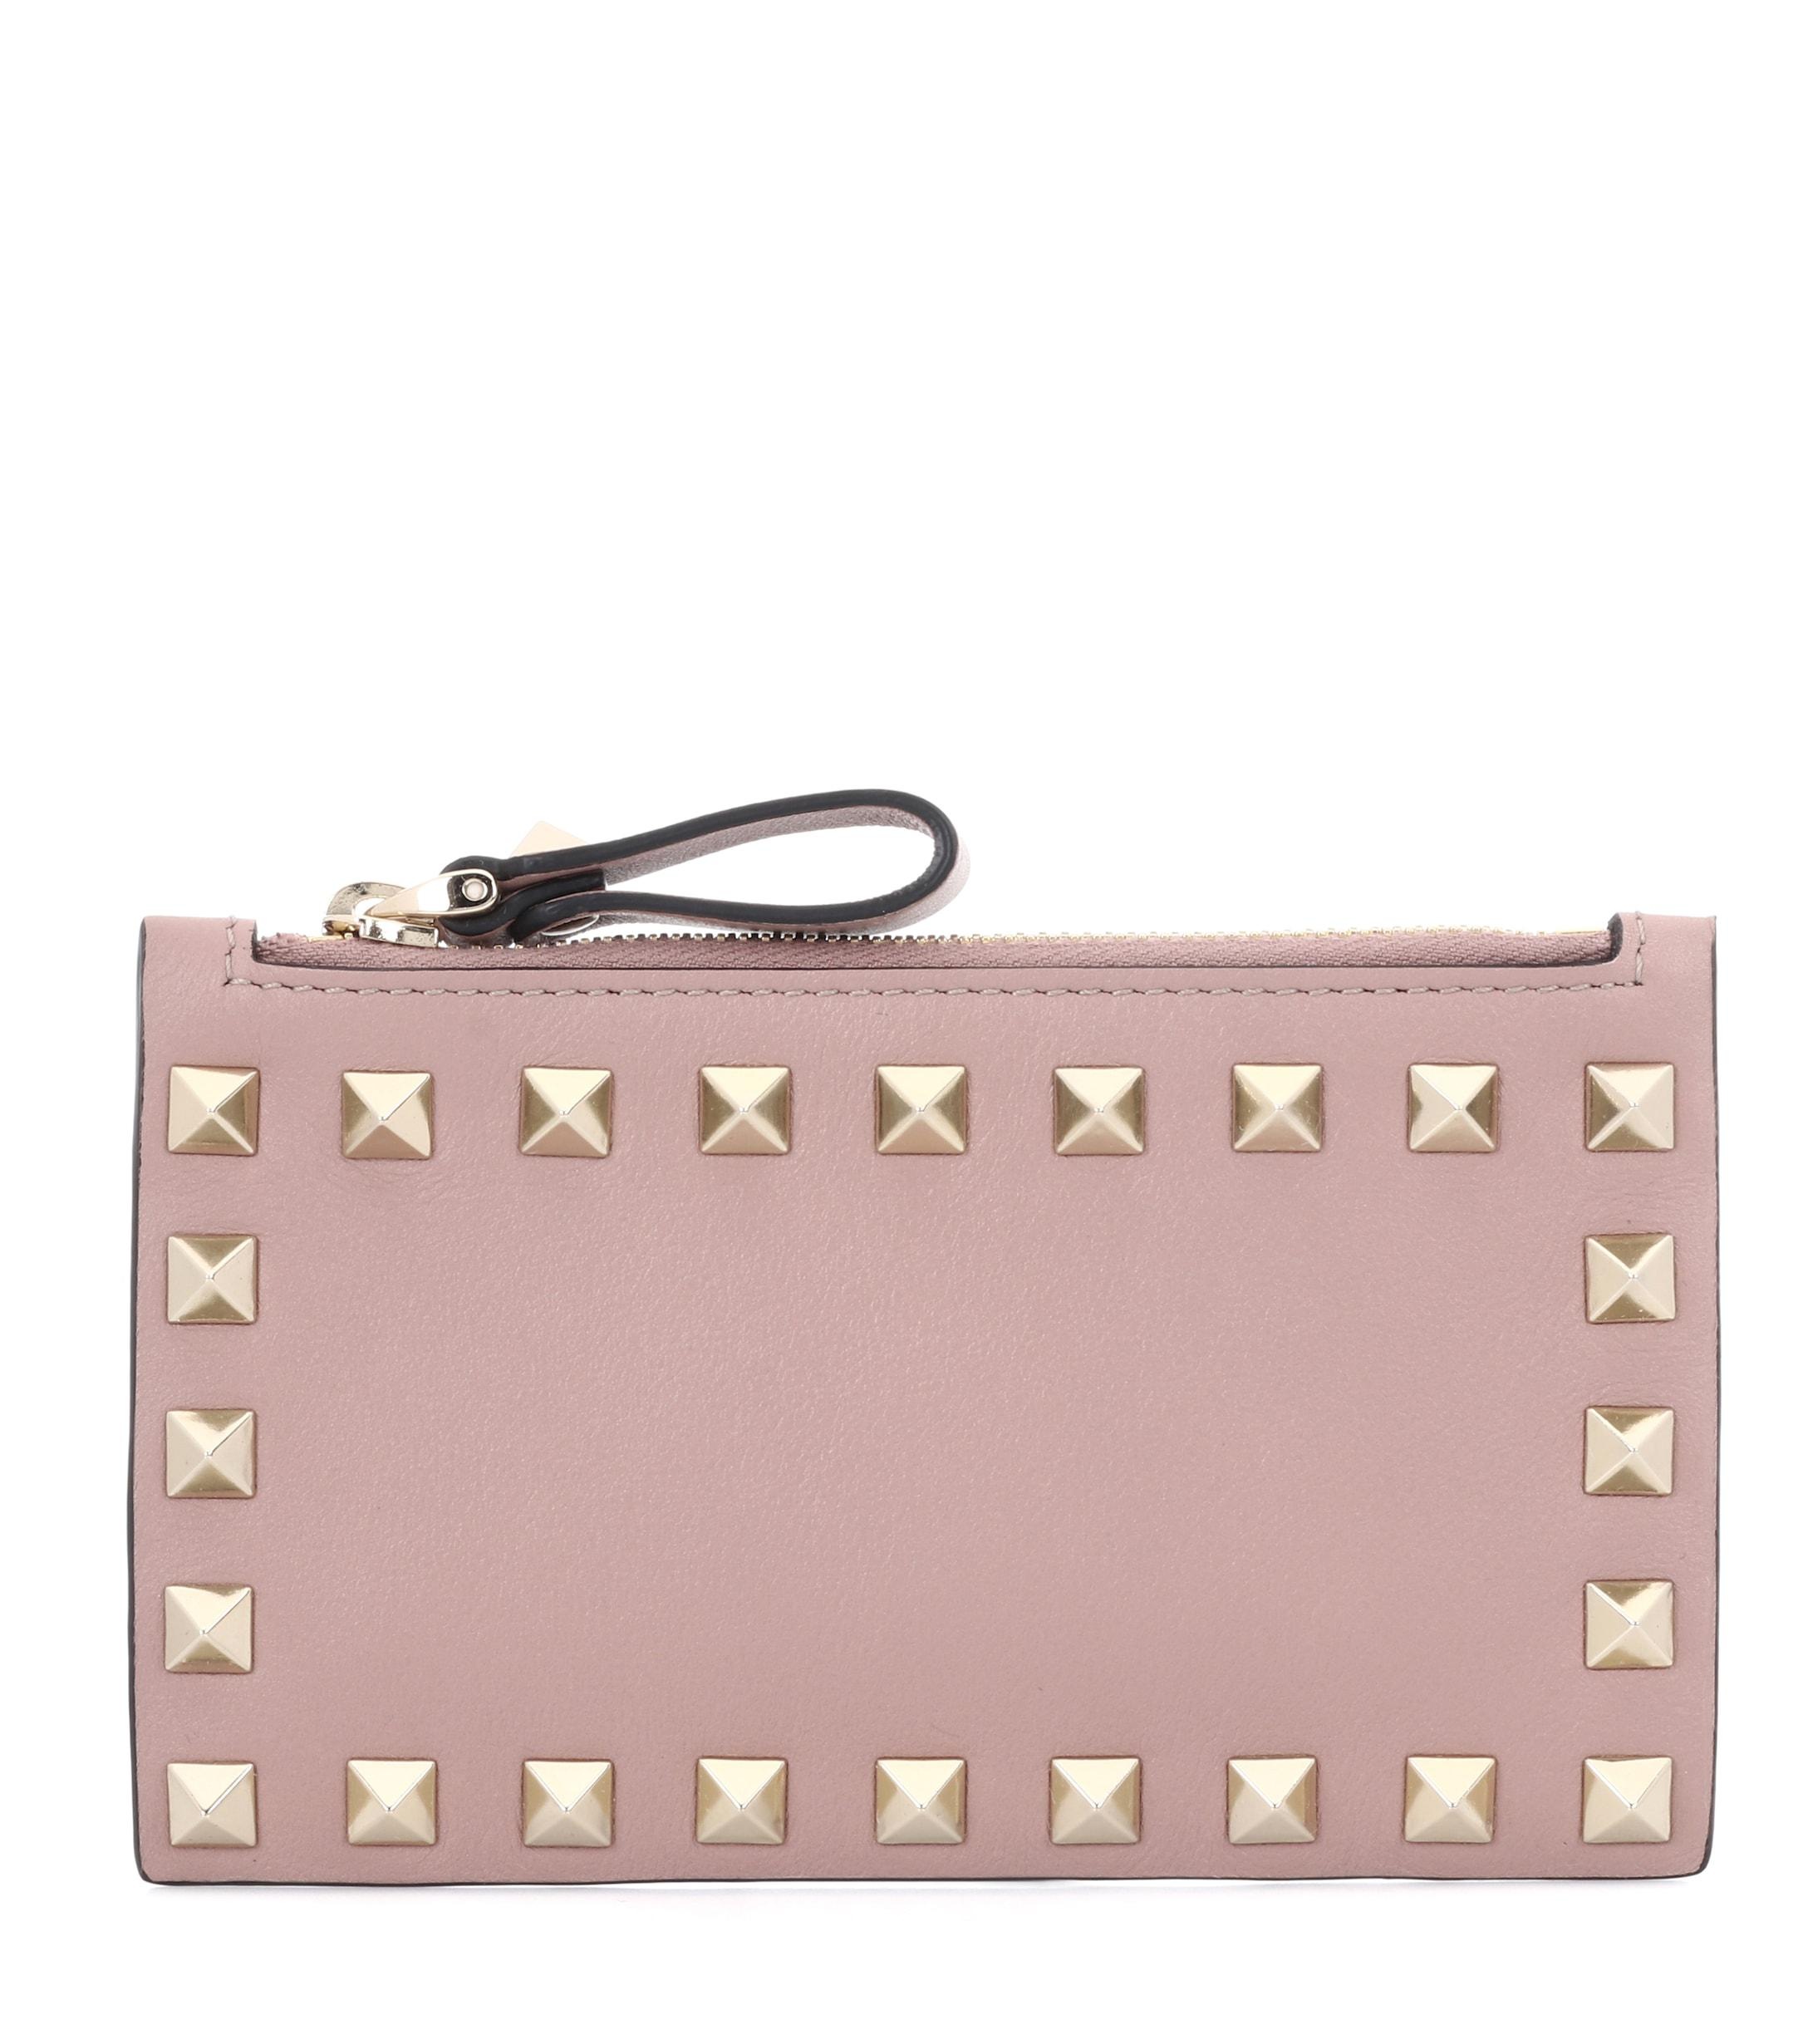 a2242ec80a5f9 Valentino Rockstud Leather Card Holder in Pink - Lyst